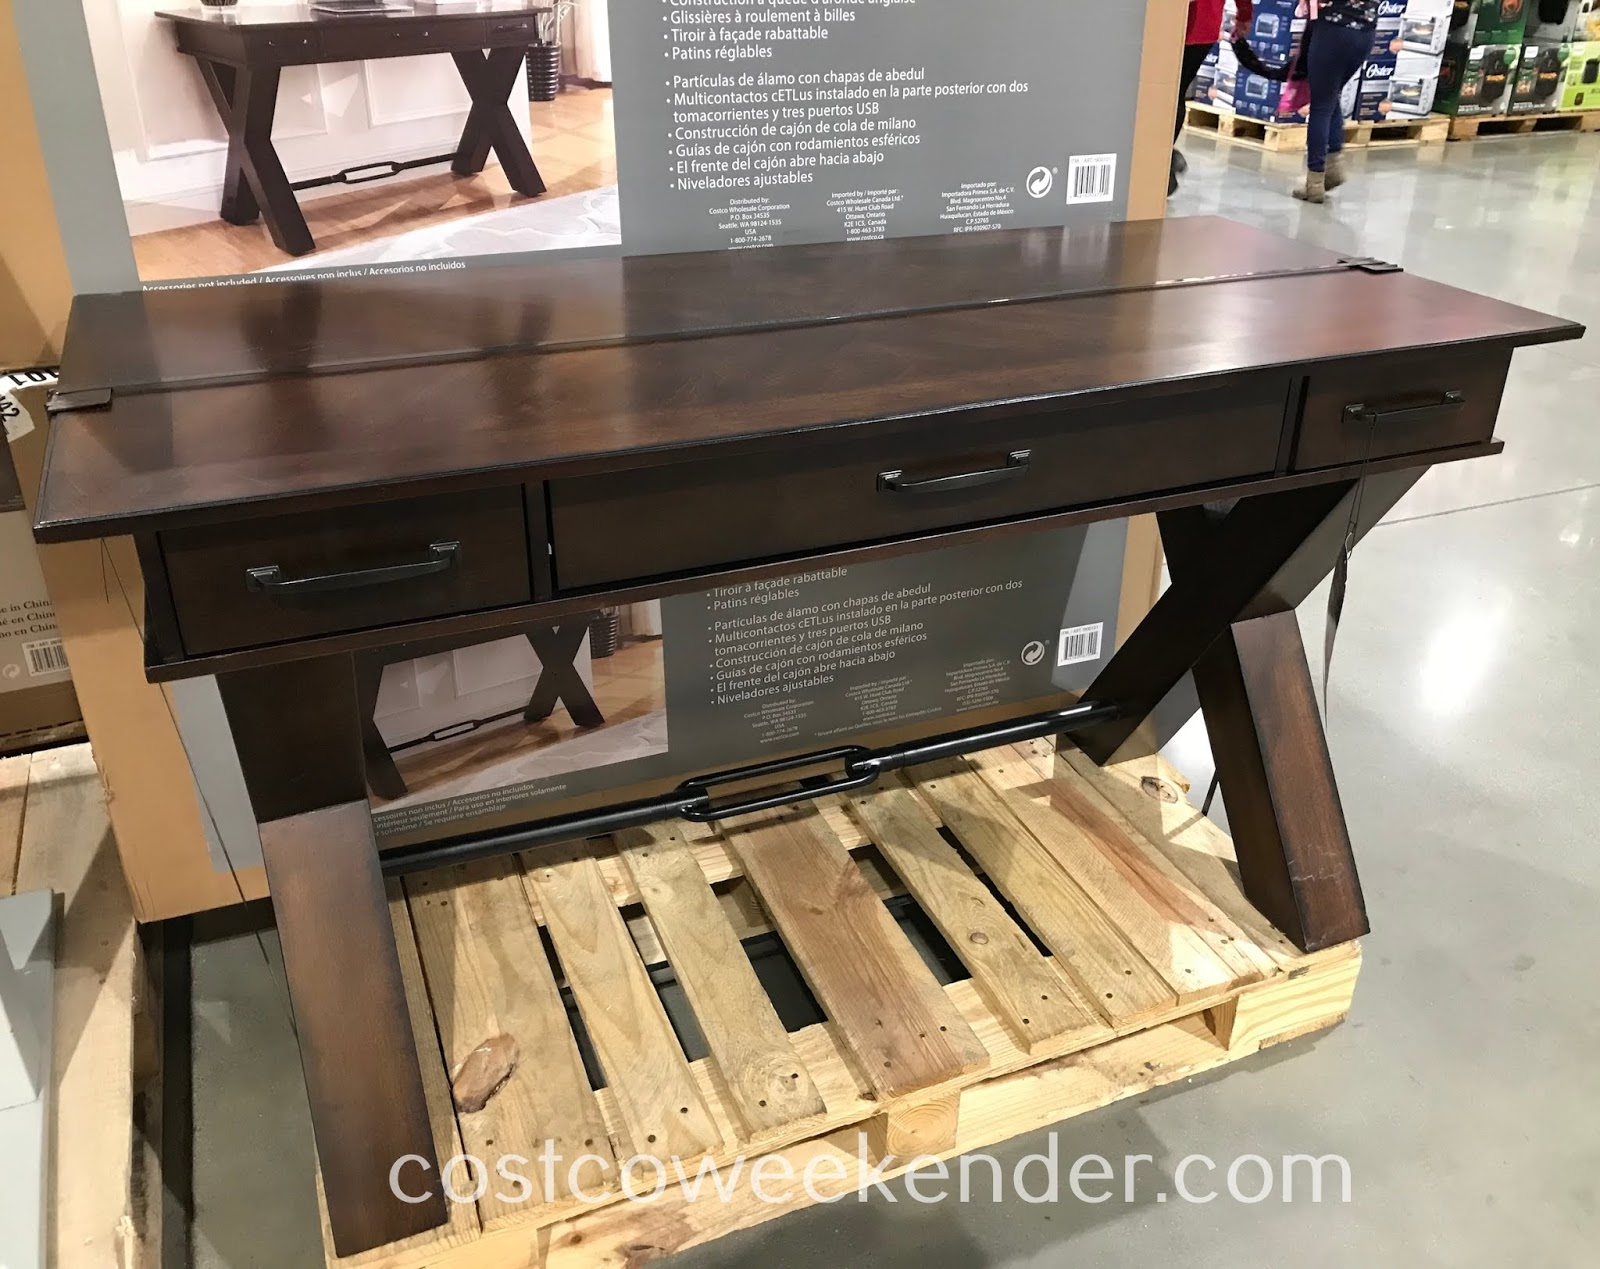 Costco 1900101 - 54-inch Writing Desk: great for any home office